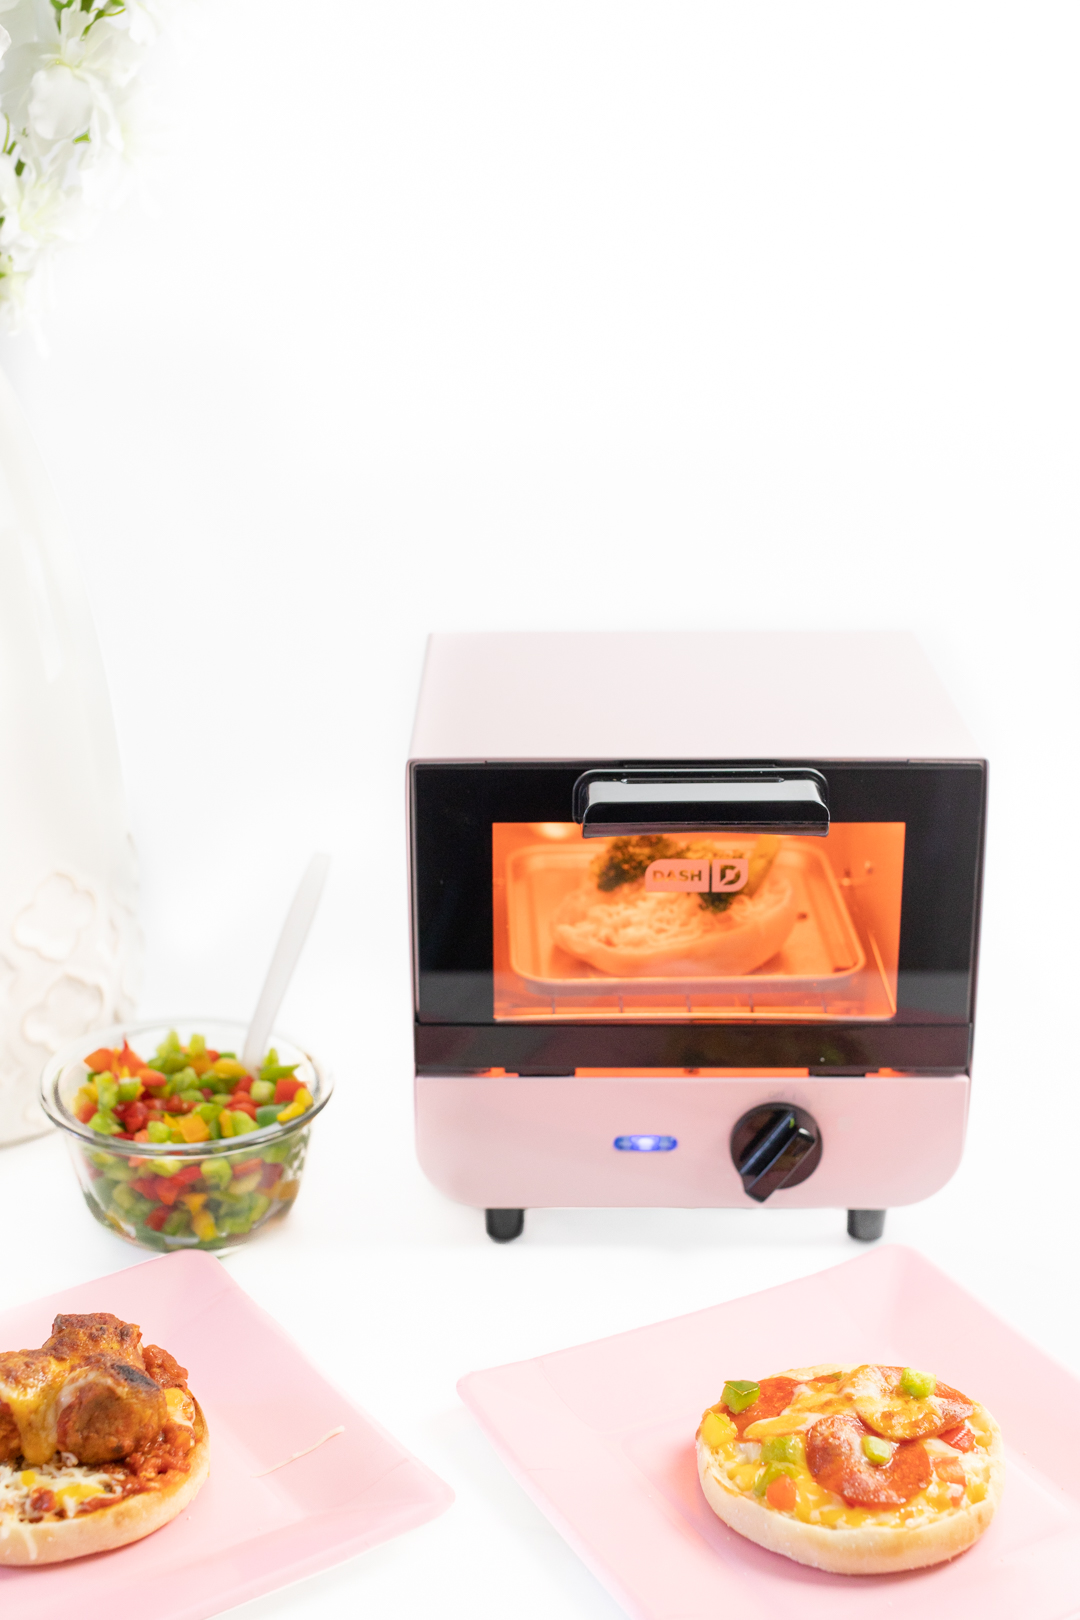 Mini Toaster Oven toasting an english muffin pizza